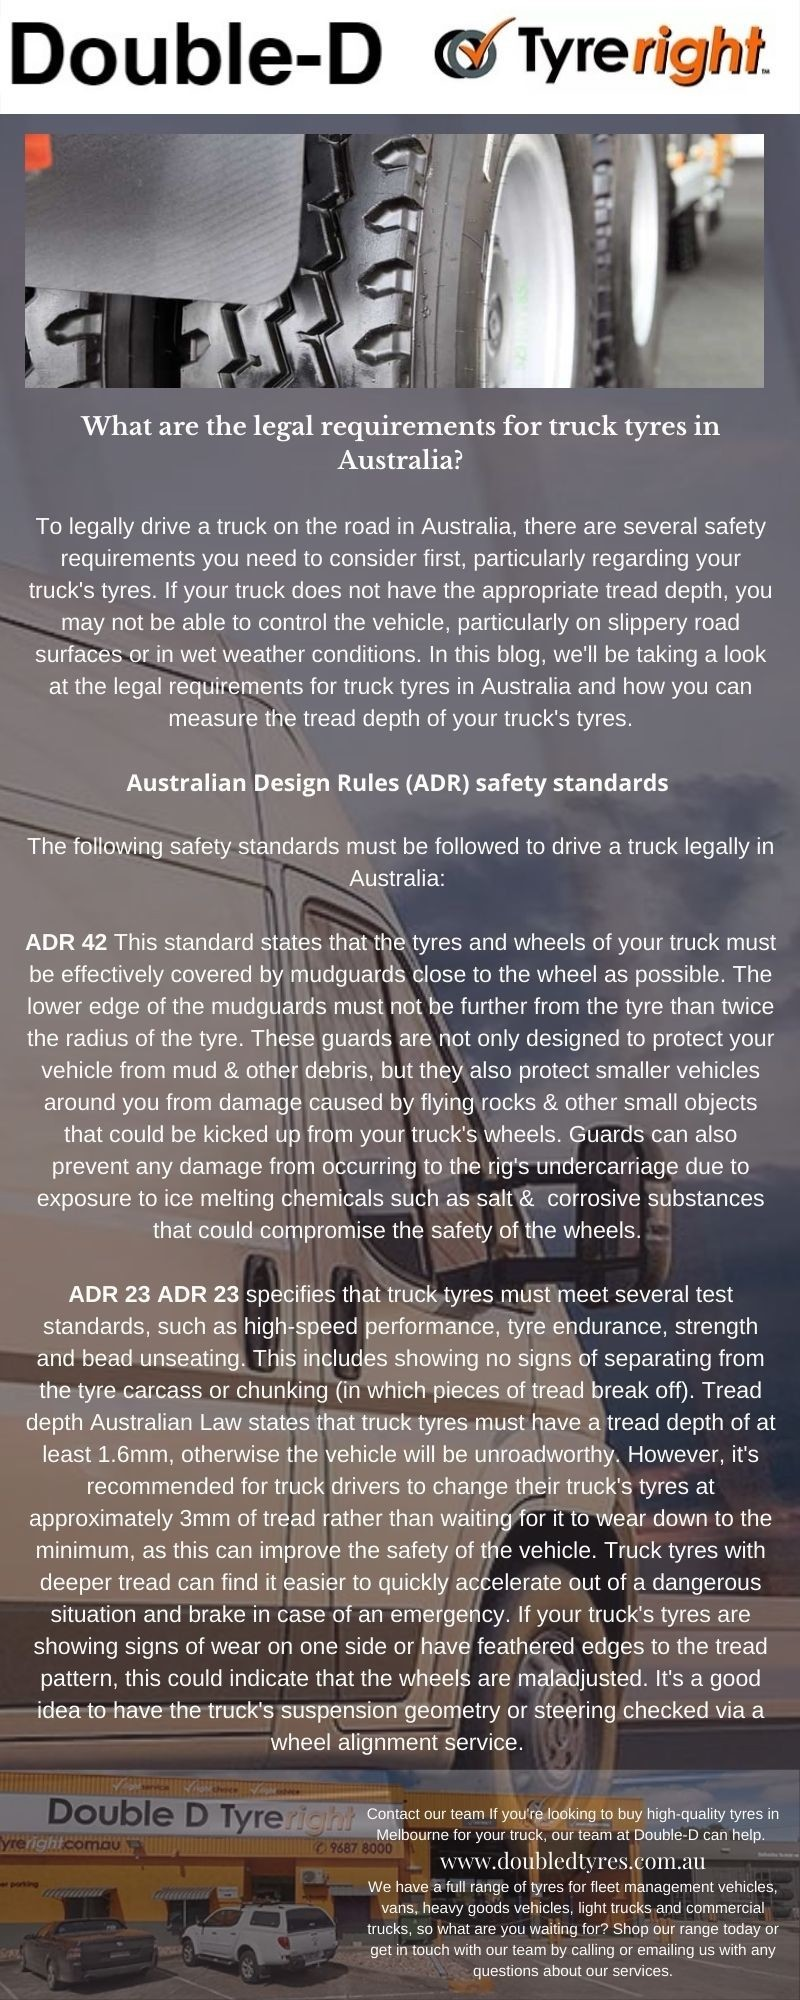 What are the legal requirements for truck tyres in Australia?